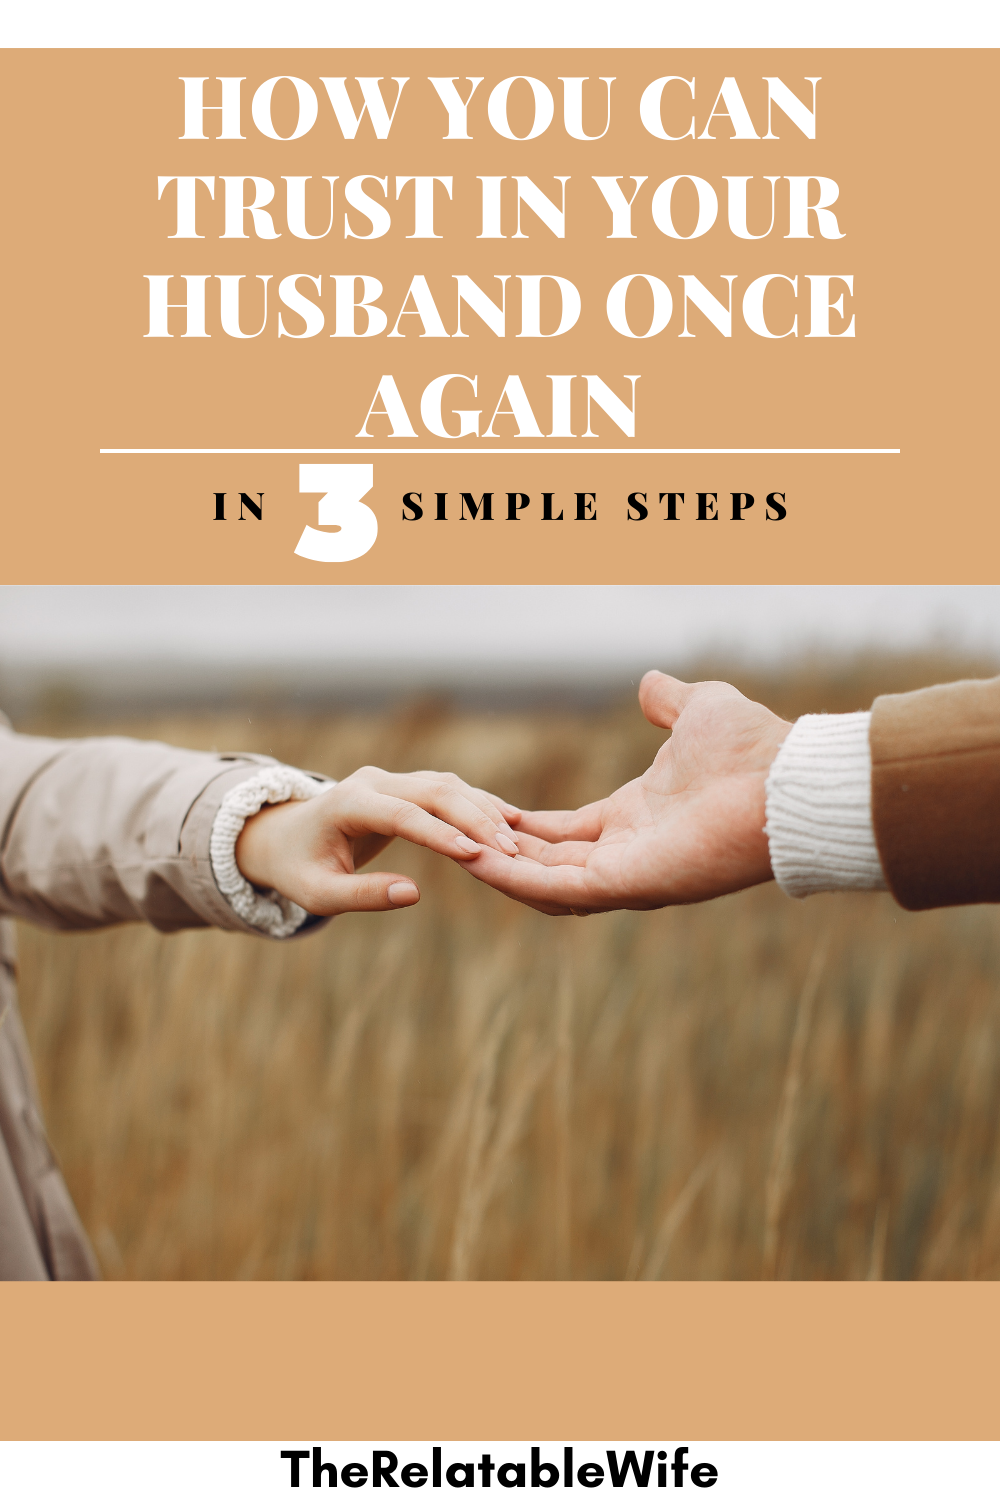 Trust t husband doesn wife When You